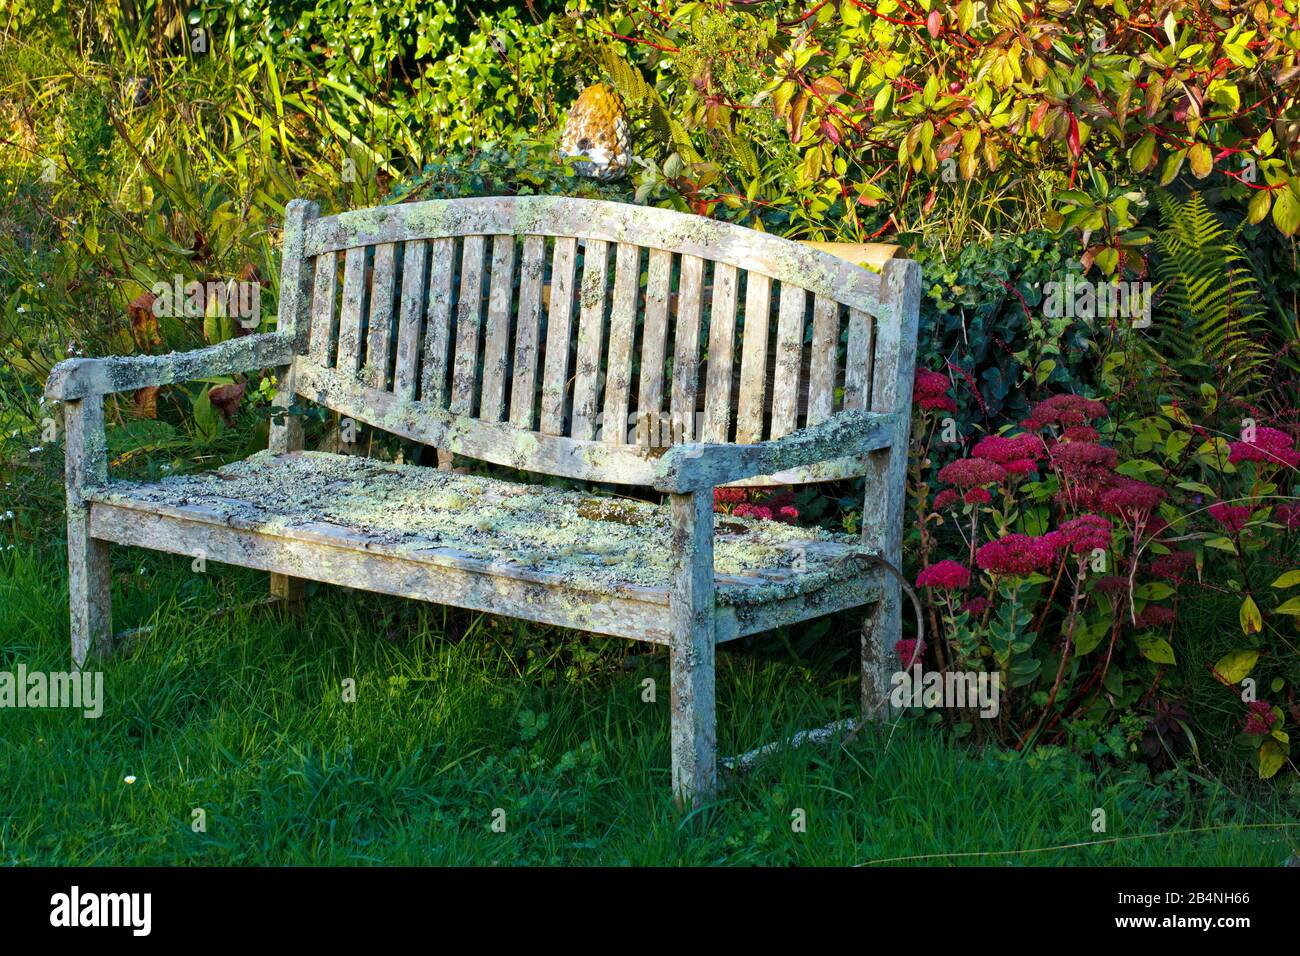 Wooden Bench Covered With Lichen In The Natural Garden In The Cote Des Bruyeres Region In The Finistère Department Stock Photo Alamy